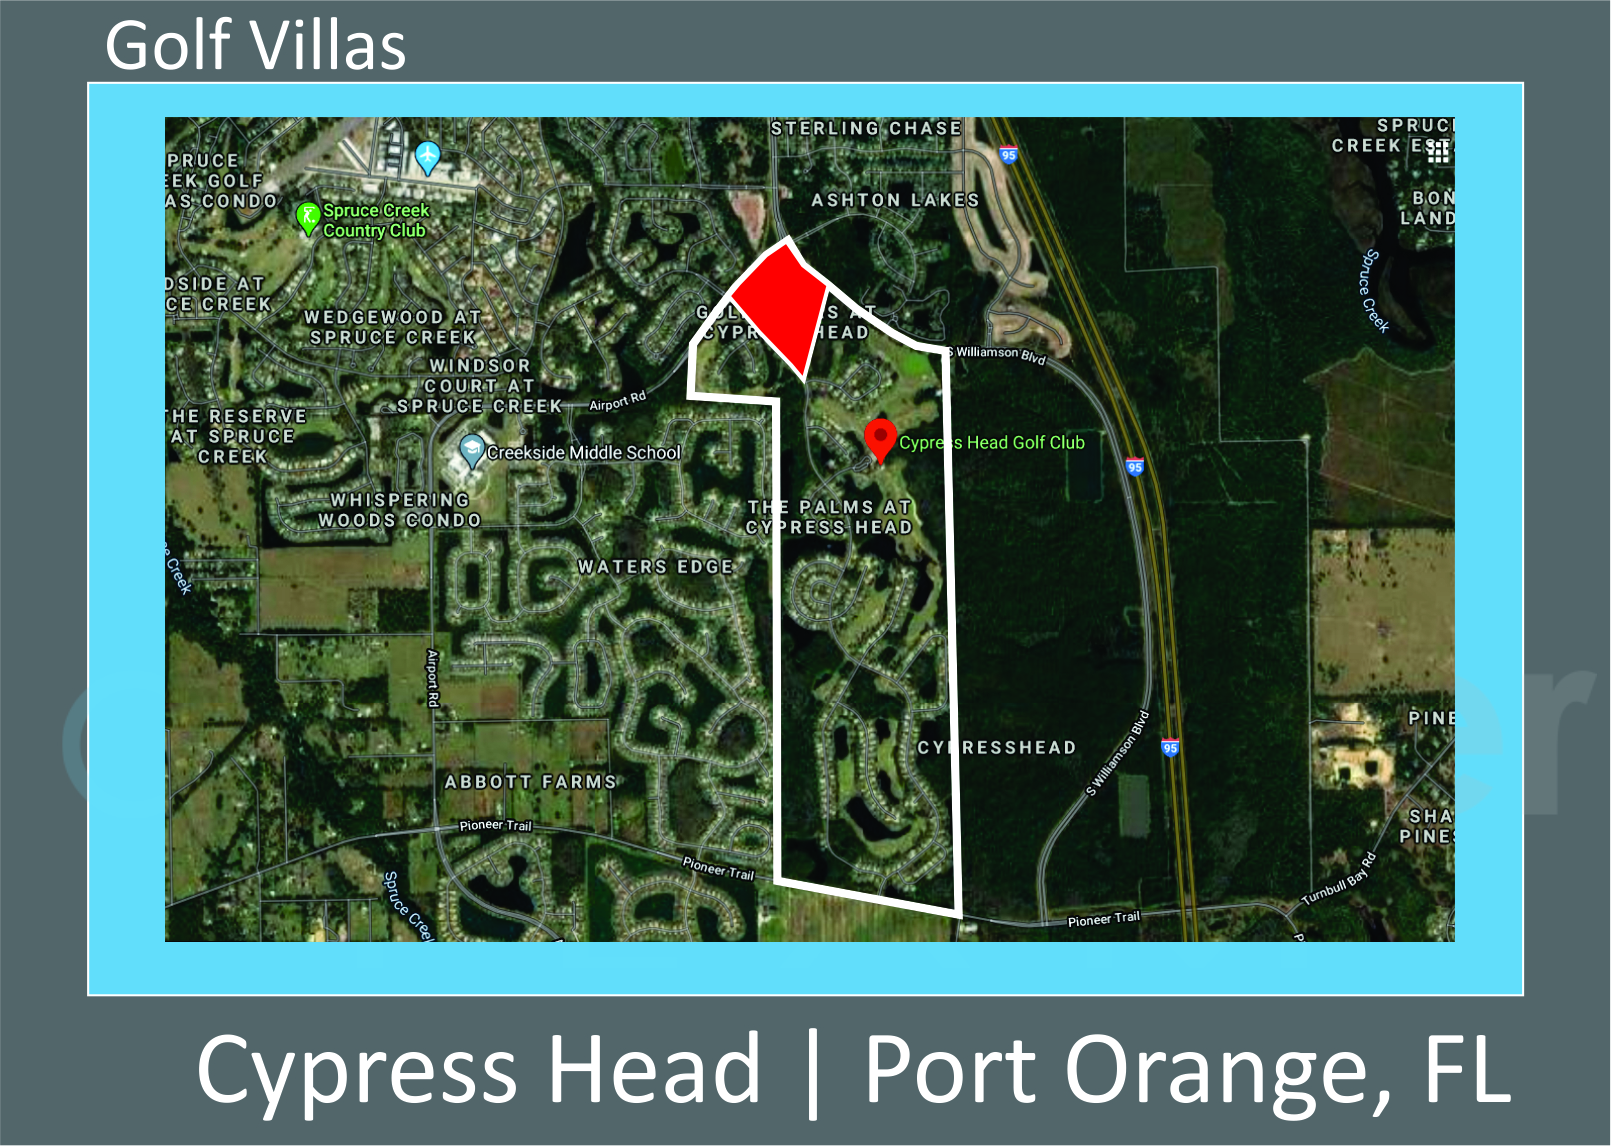 Map of Cypress Head Golf Villas, Port Orange, FL